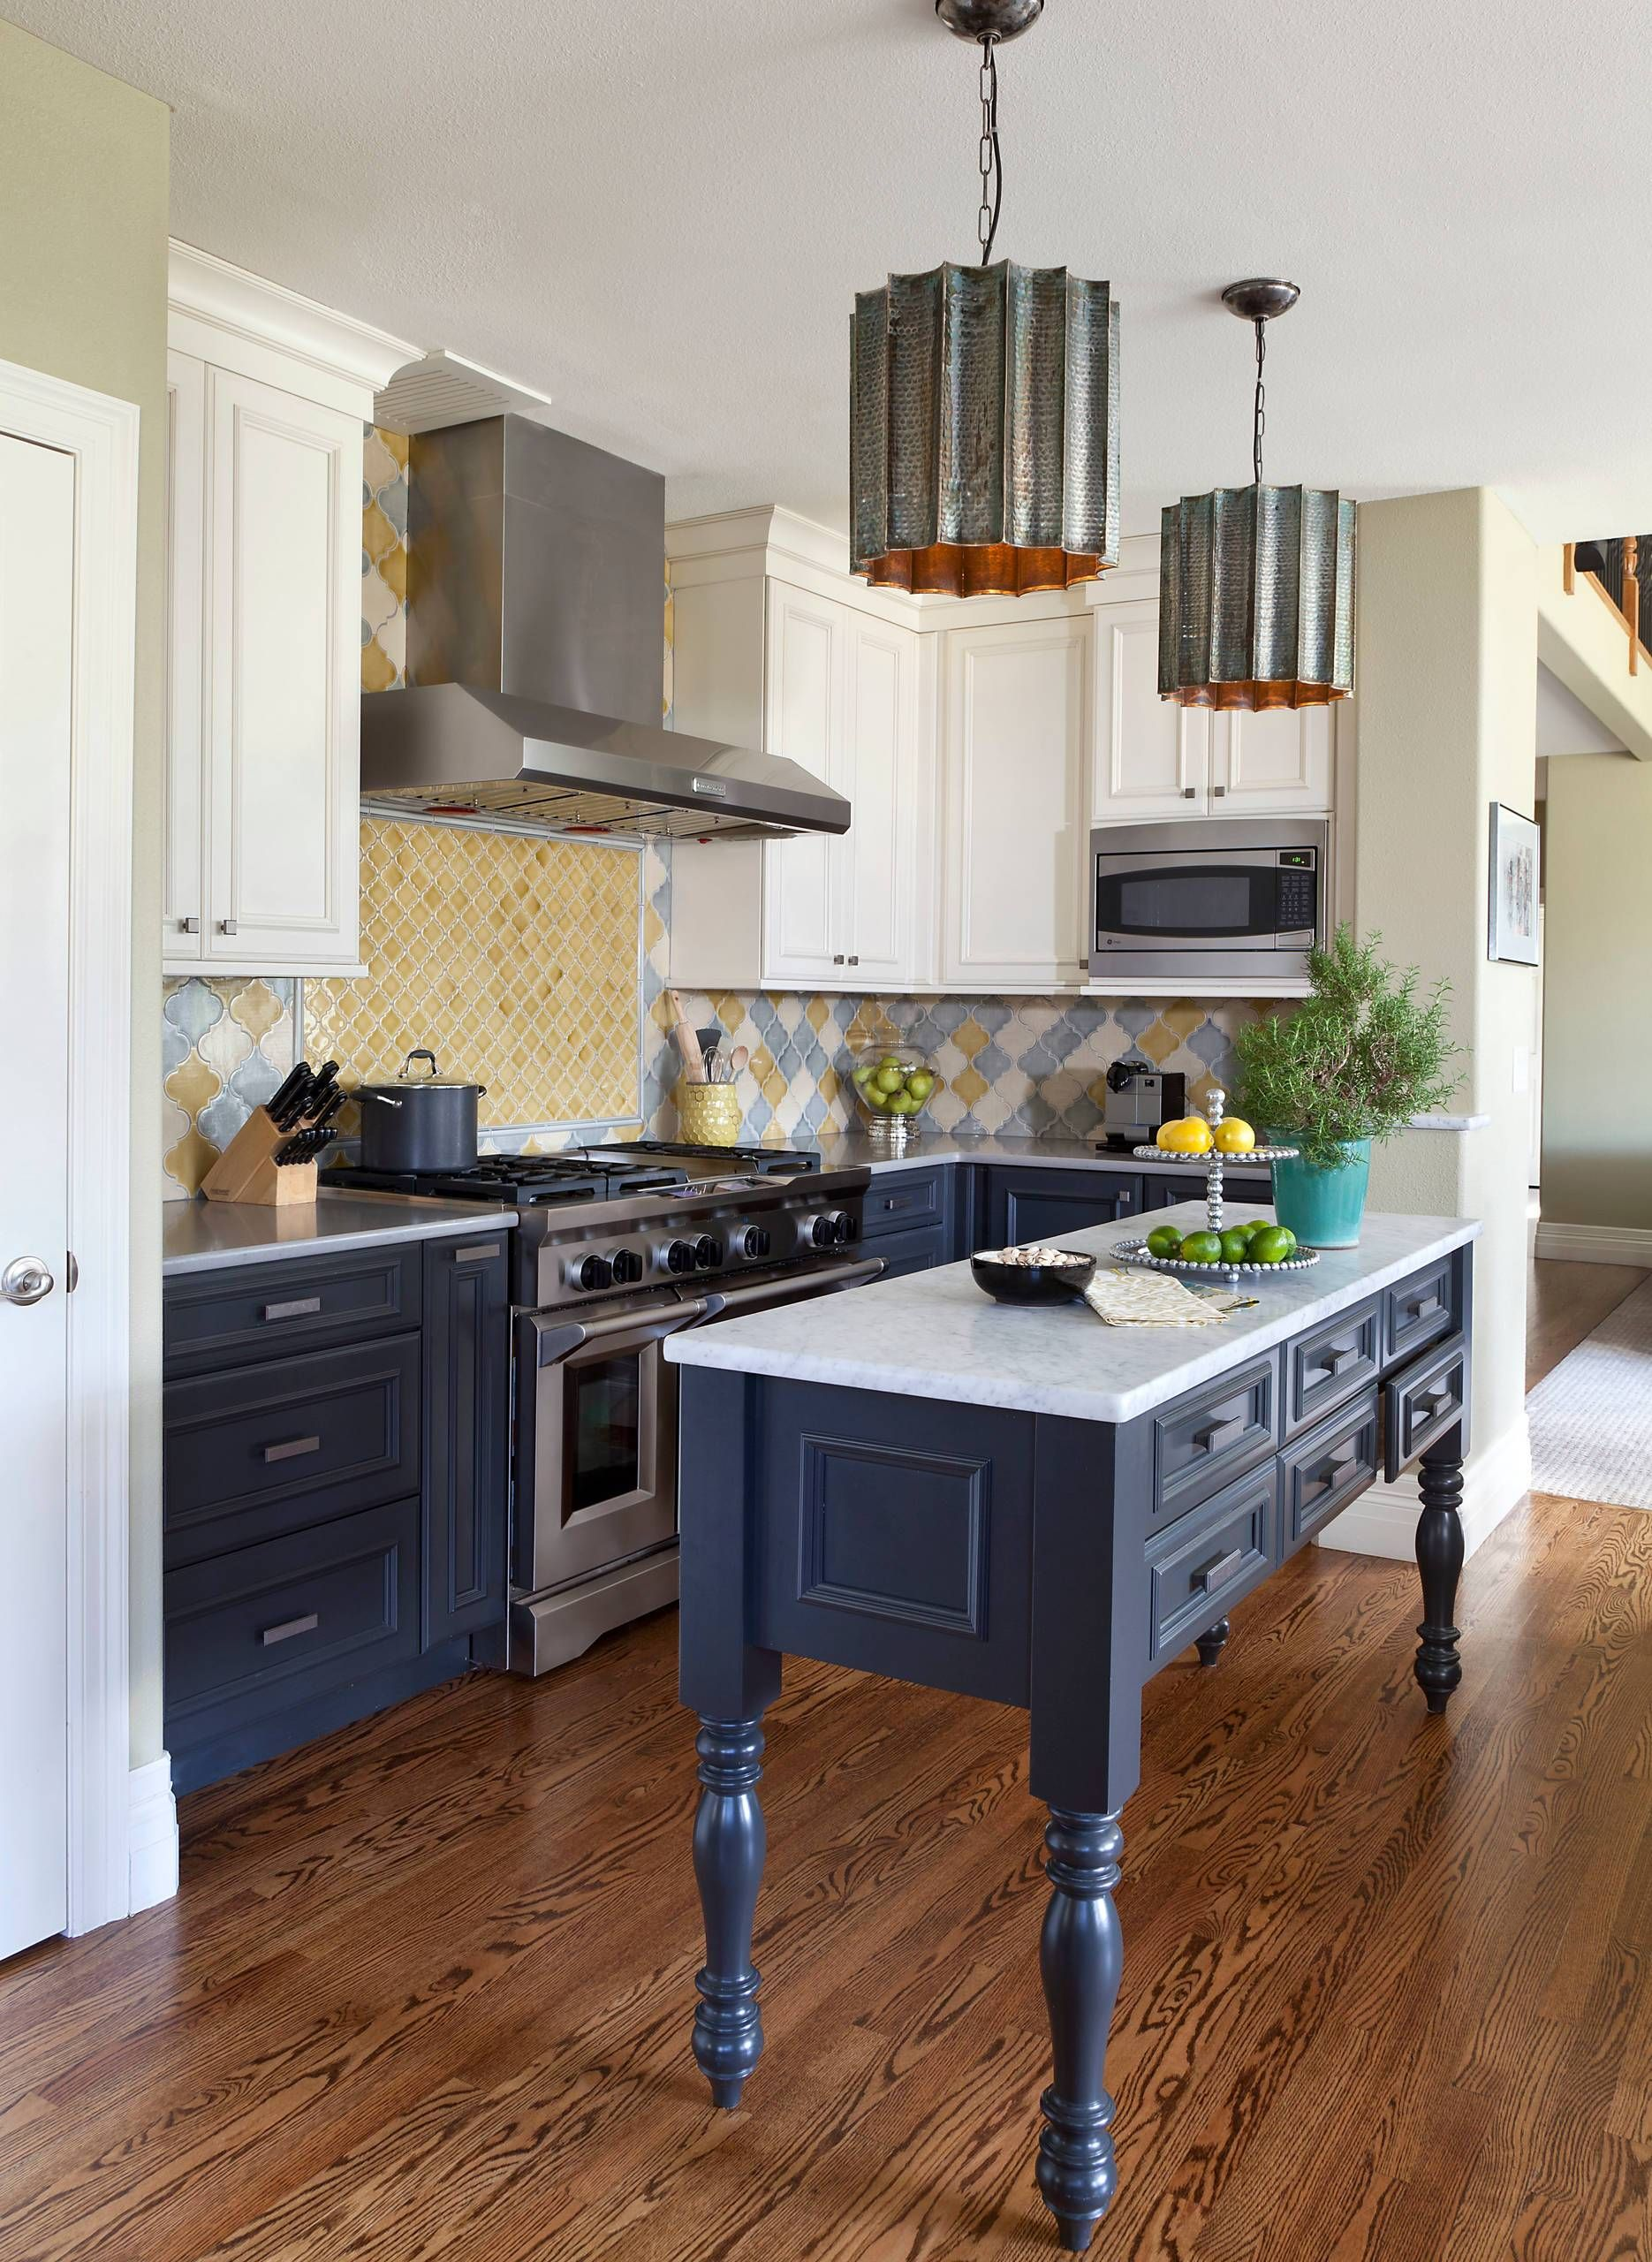 Outstanding Modern L Shaped Kitchen Cabinets Only On Indahomescom #Kitchencabinets